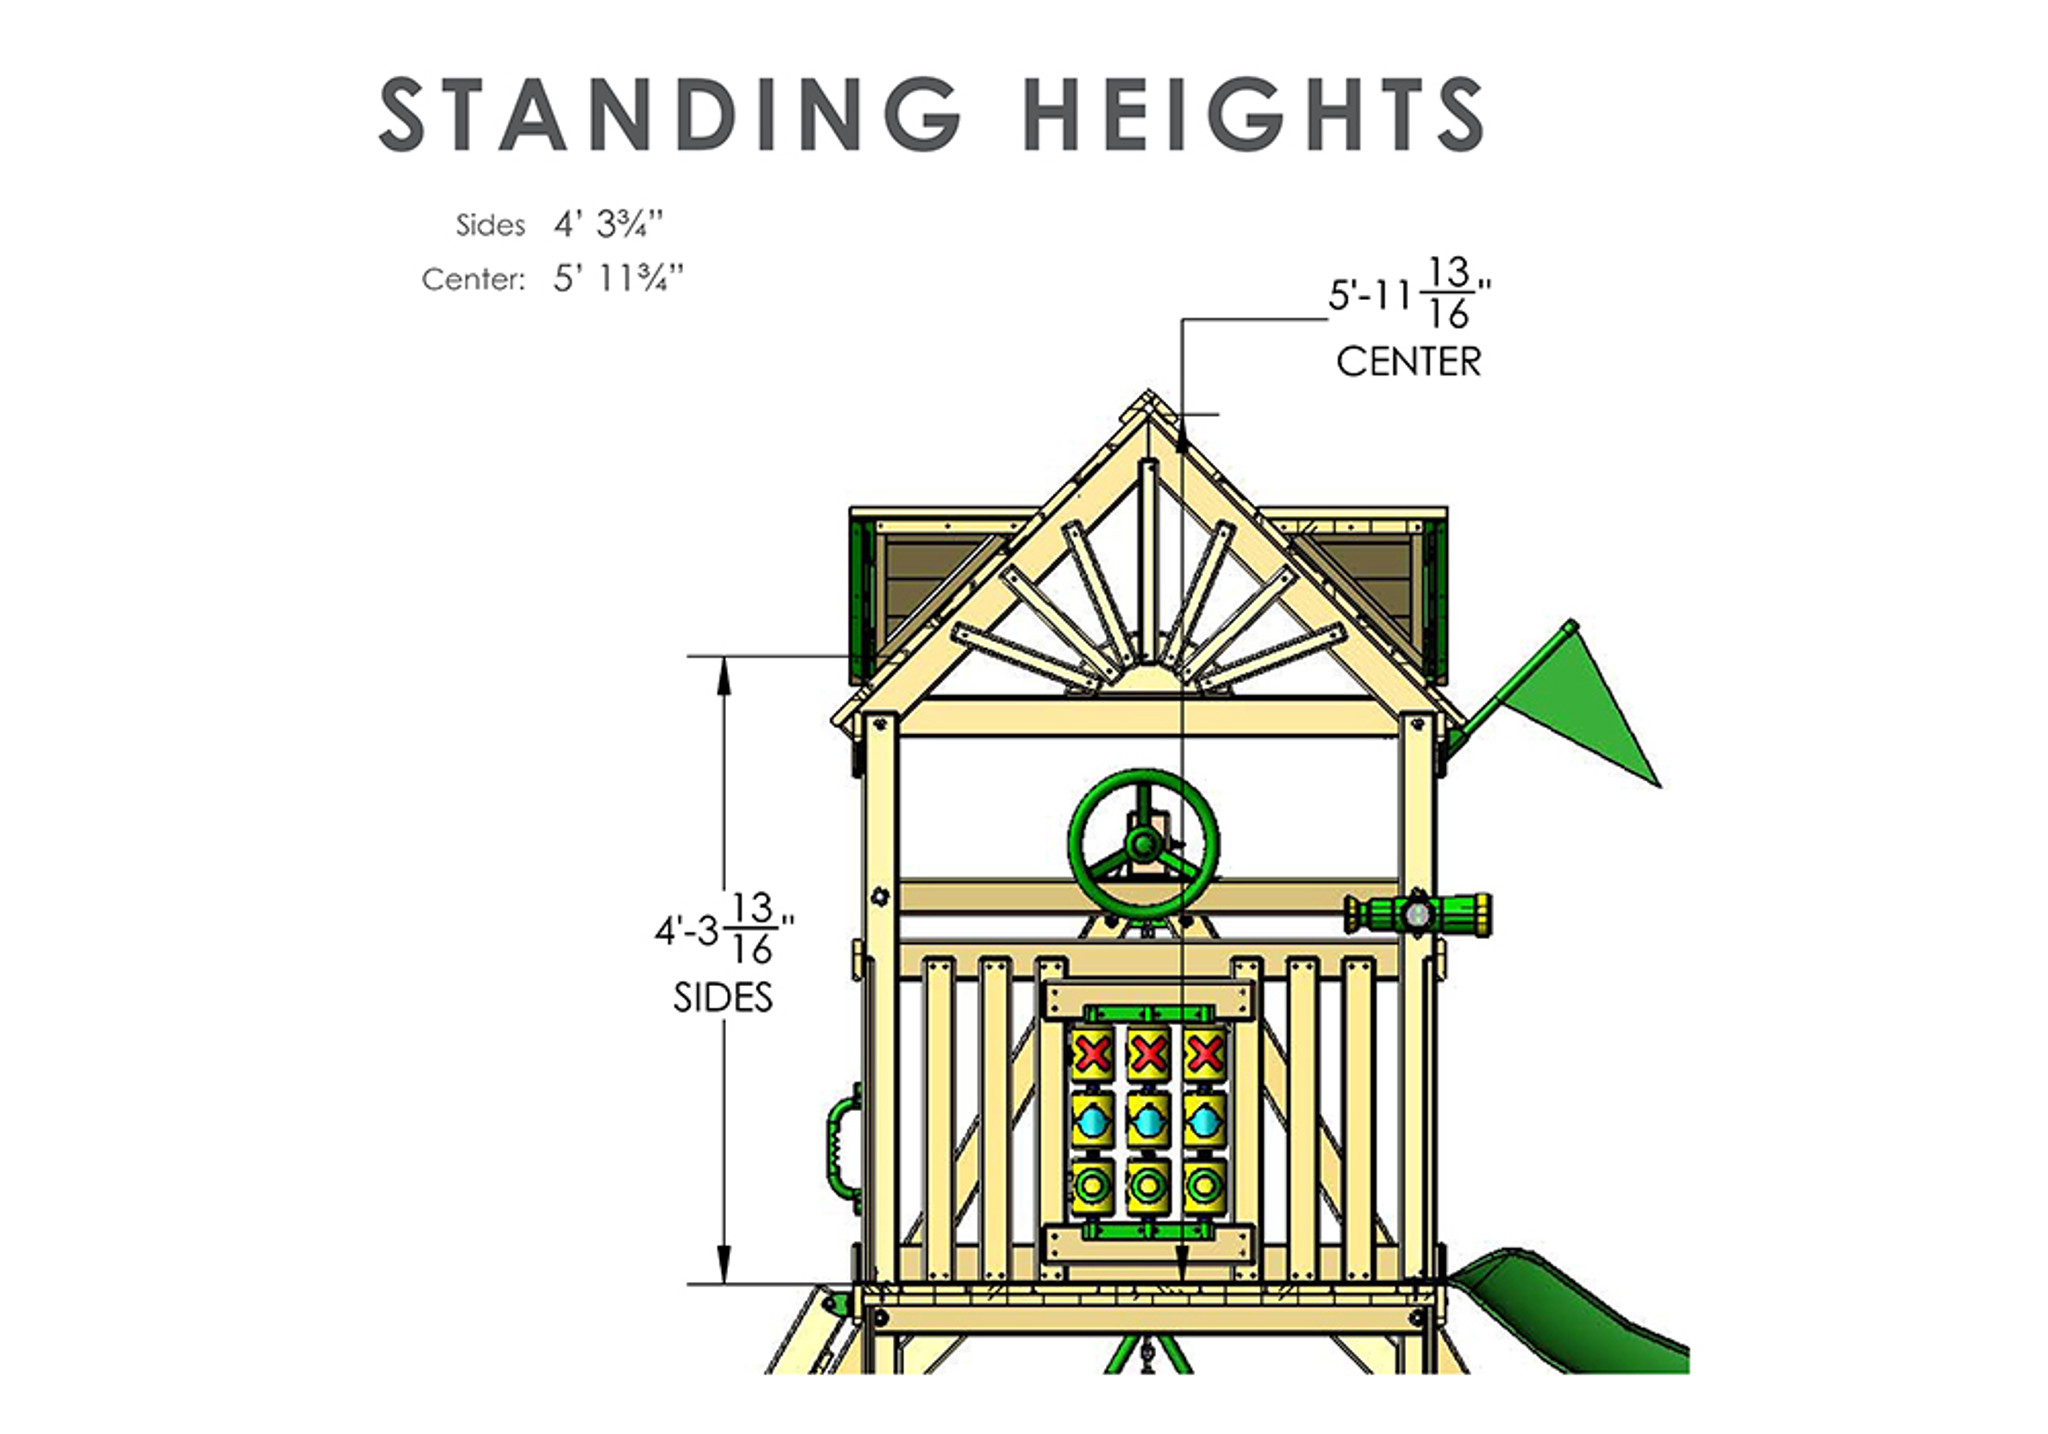 Standing Height view of Cavalier II Play Set from Playnation